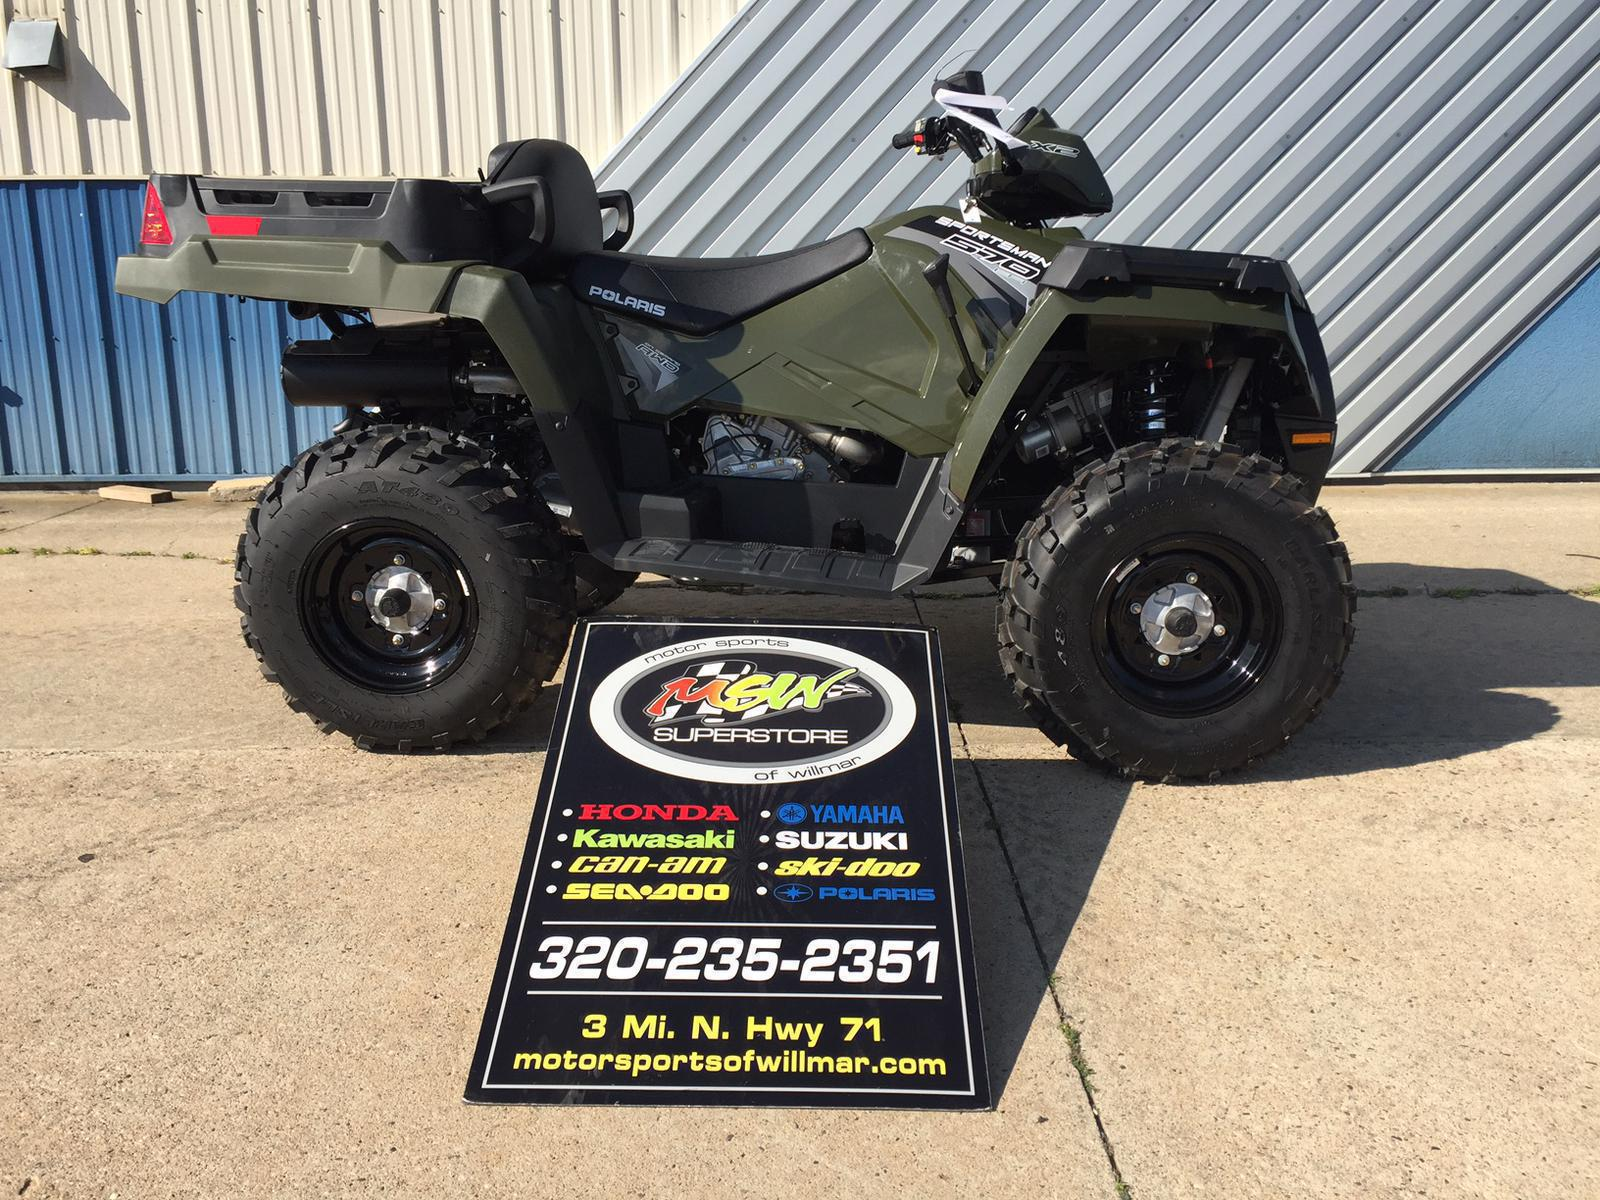 2017 polaris industries sportsman x2 570 for sale in willmar mn img0959 publicscrutiny Images